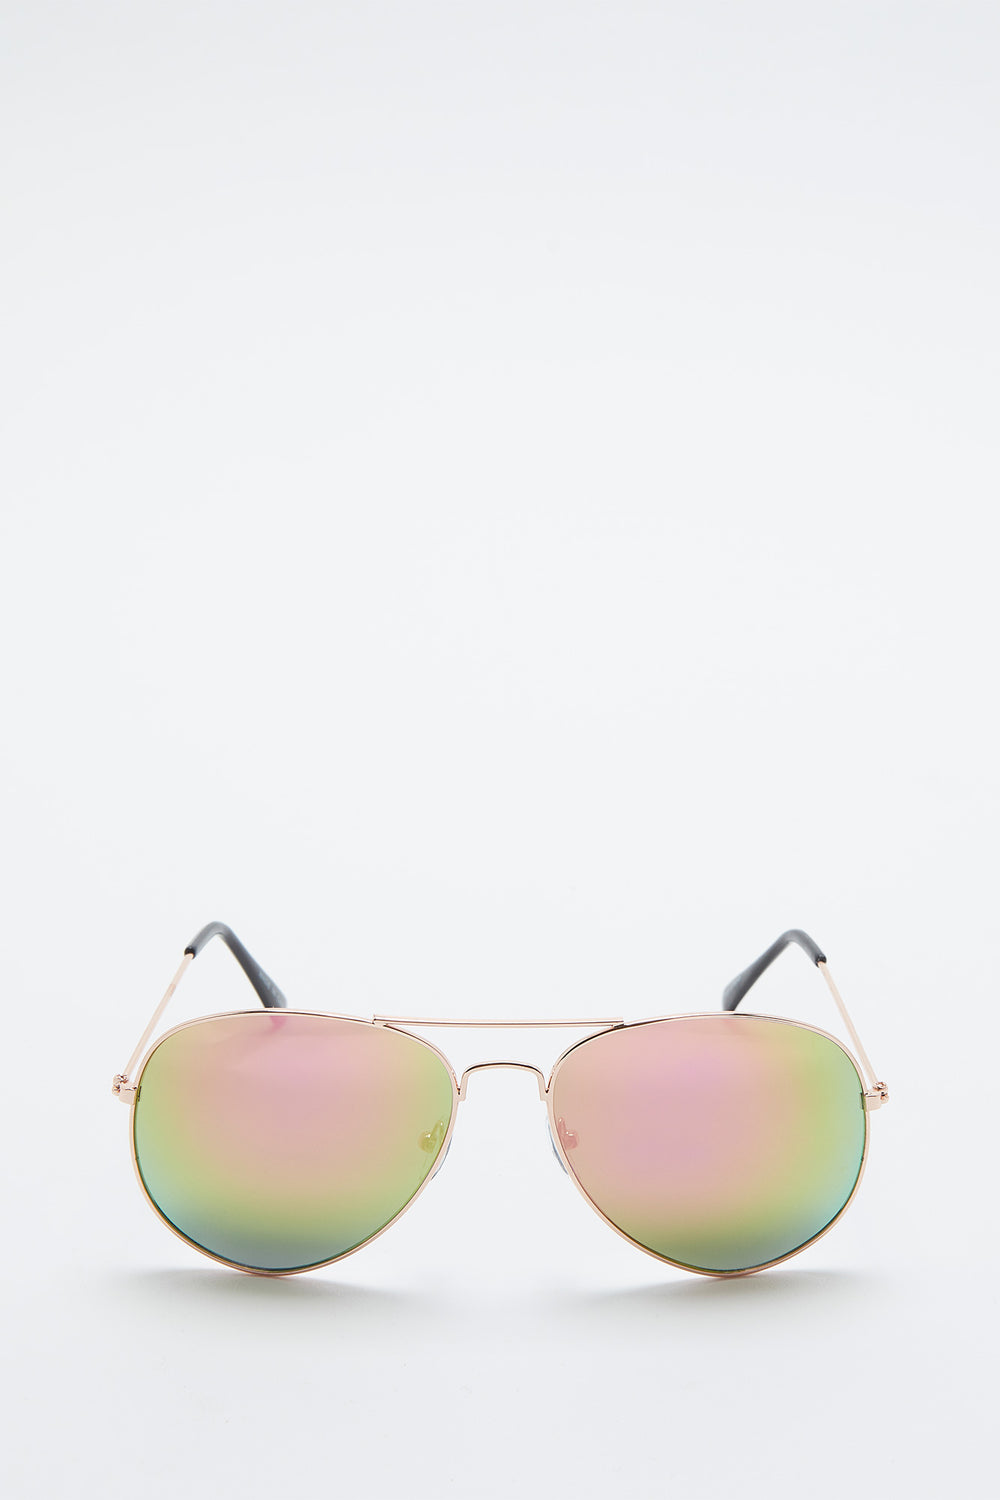 Basic Aviator Sunglasses Pink